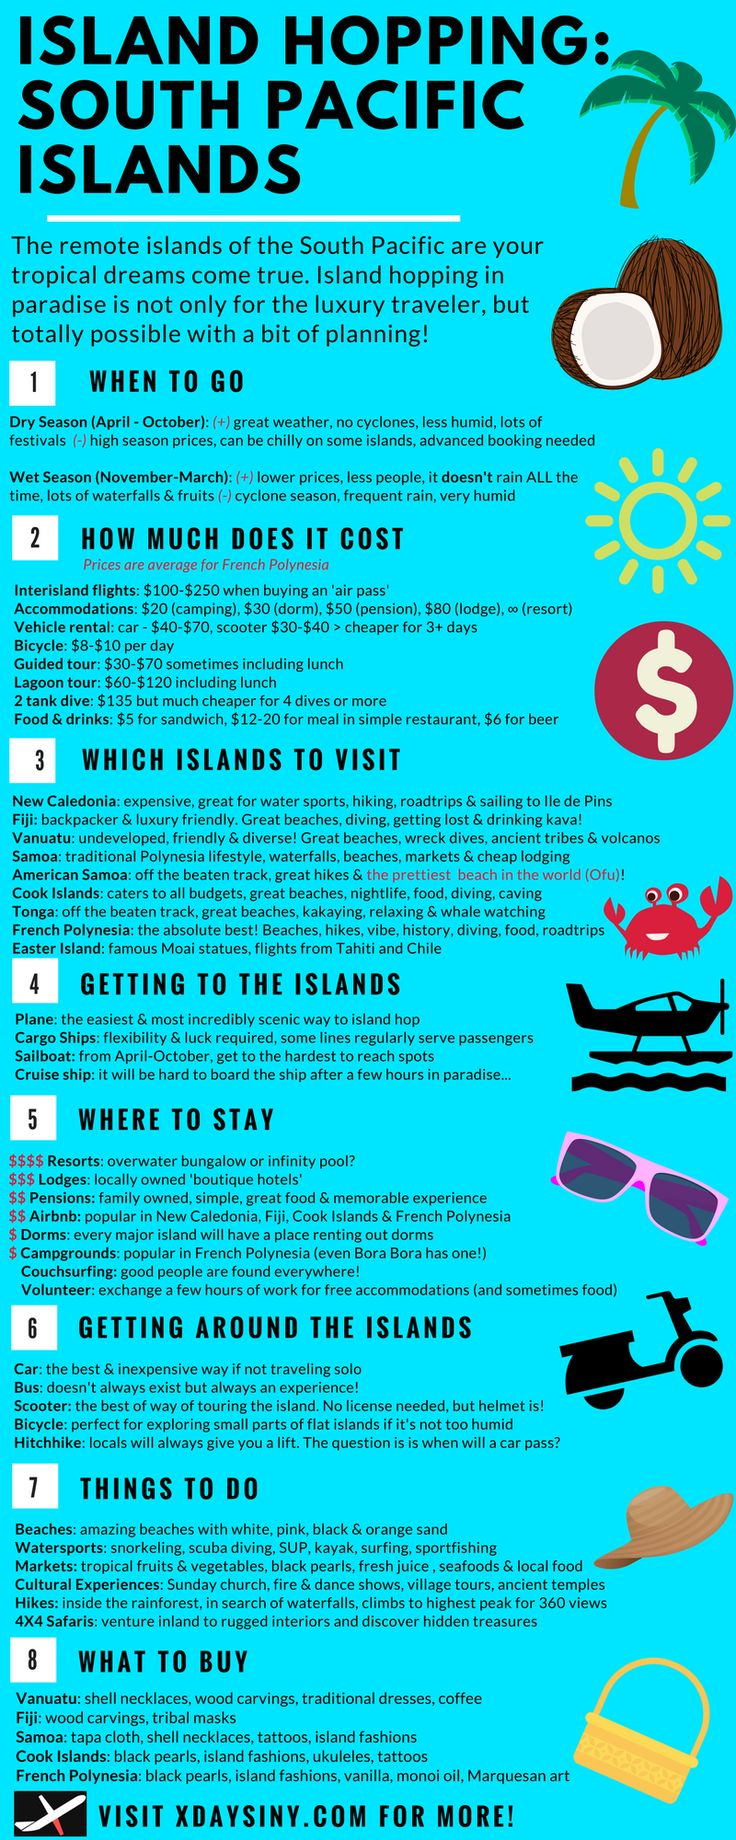 Ever dreamed of hopping from one tropical island to another in the distant South Pacific? Dream no more! This guide will explain where to begin, how much it costs and everything you need to plan your awesome adventure!